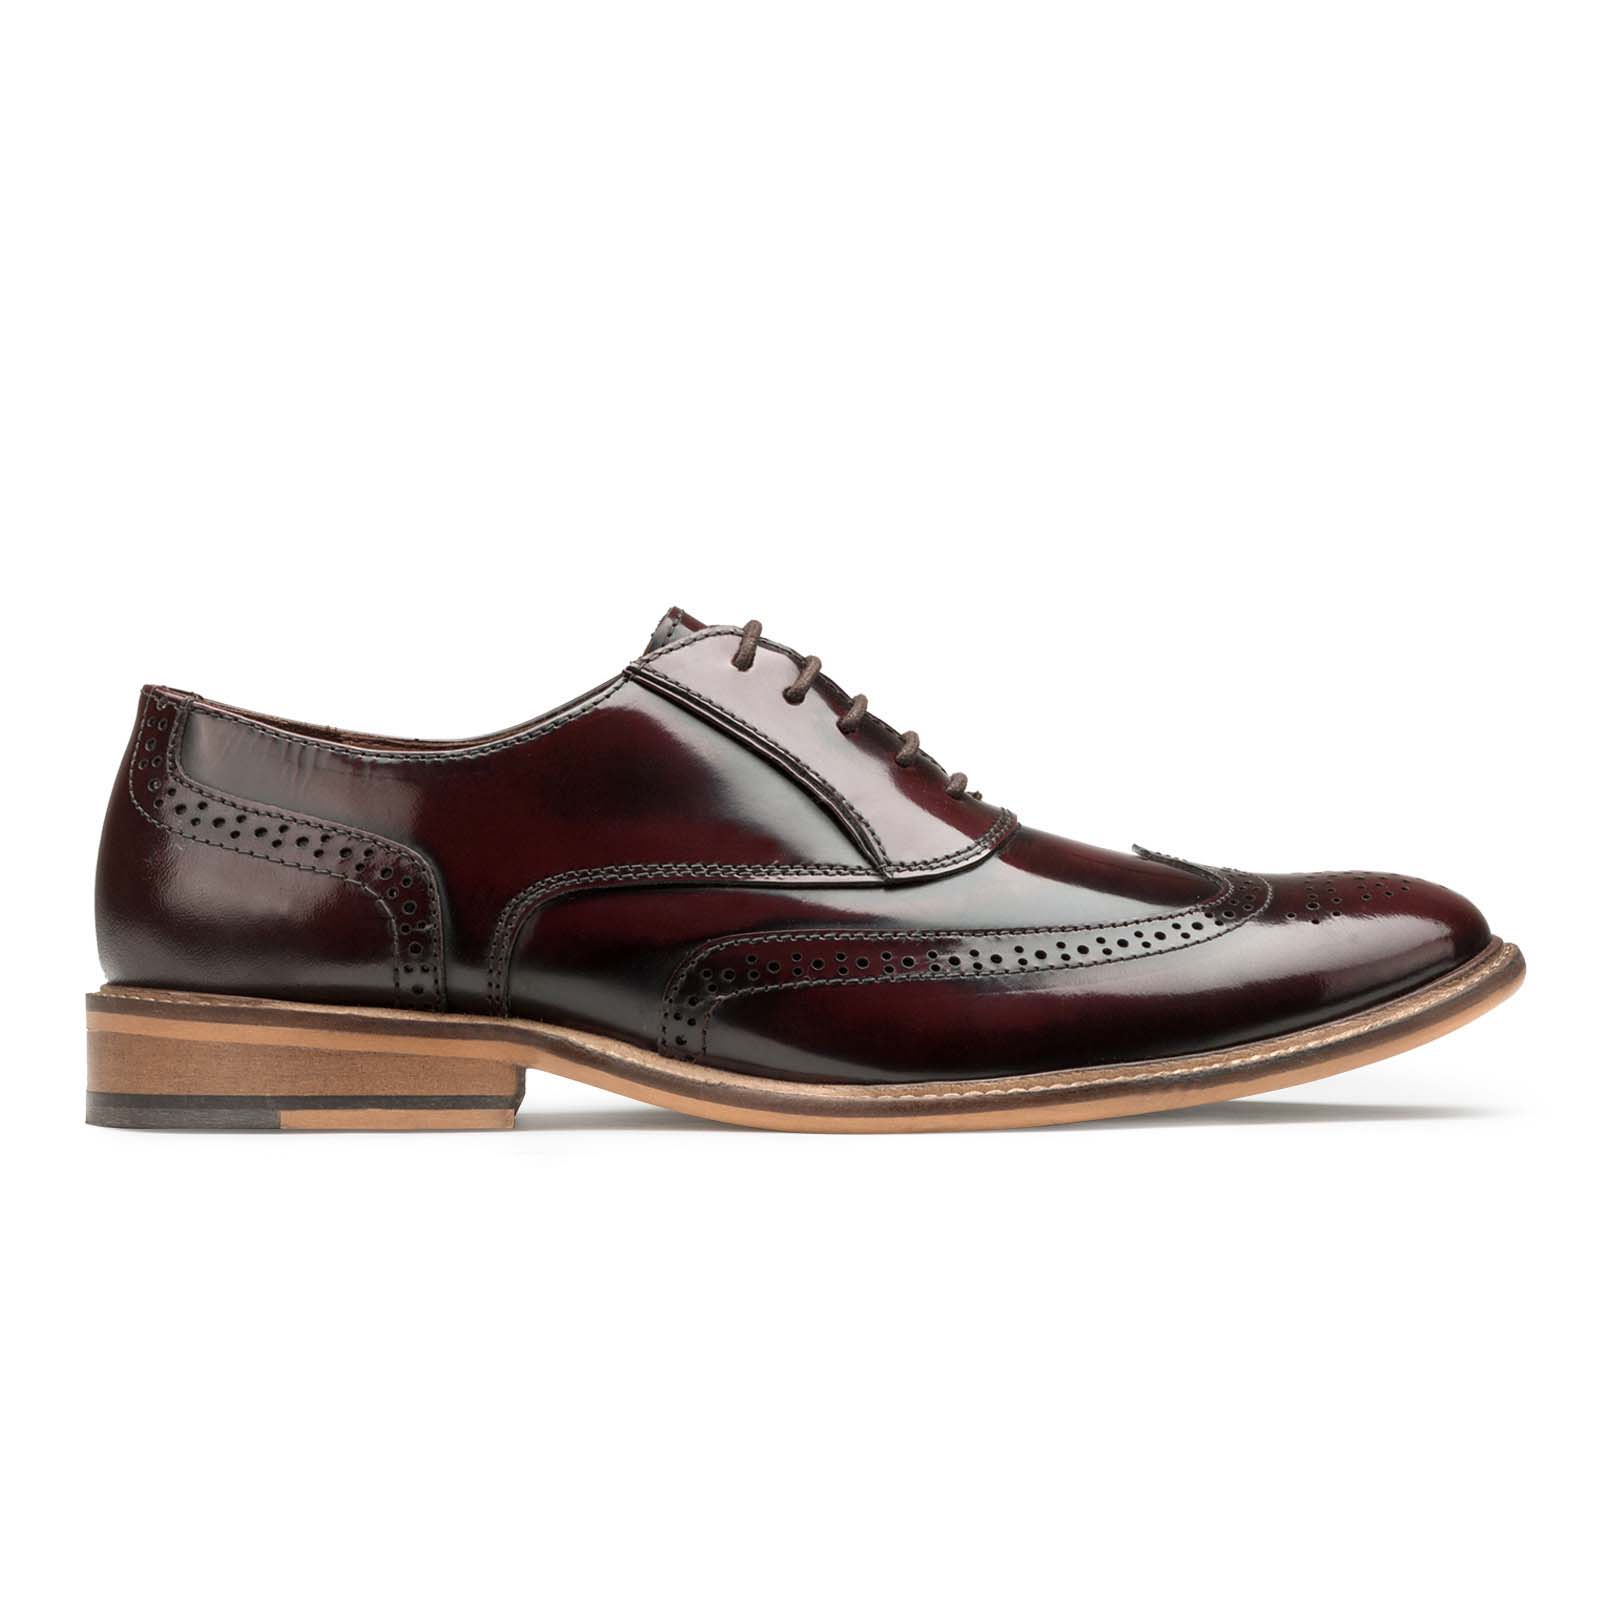 Brushoff Wingtip Oxford